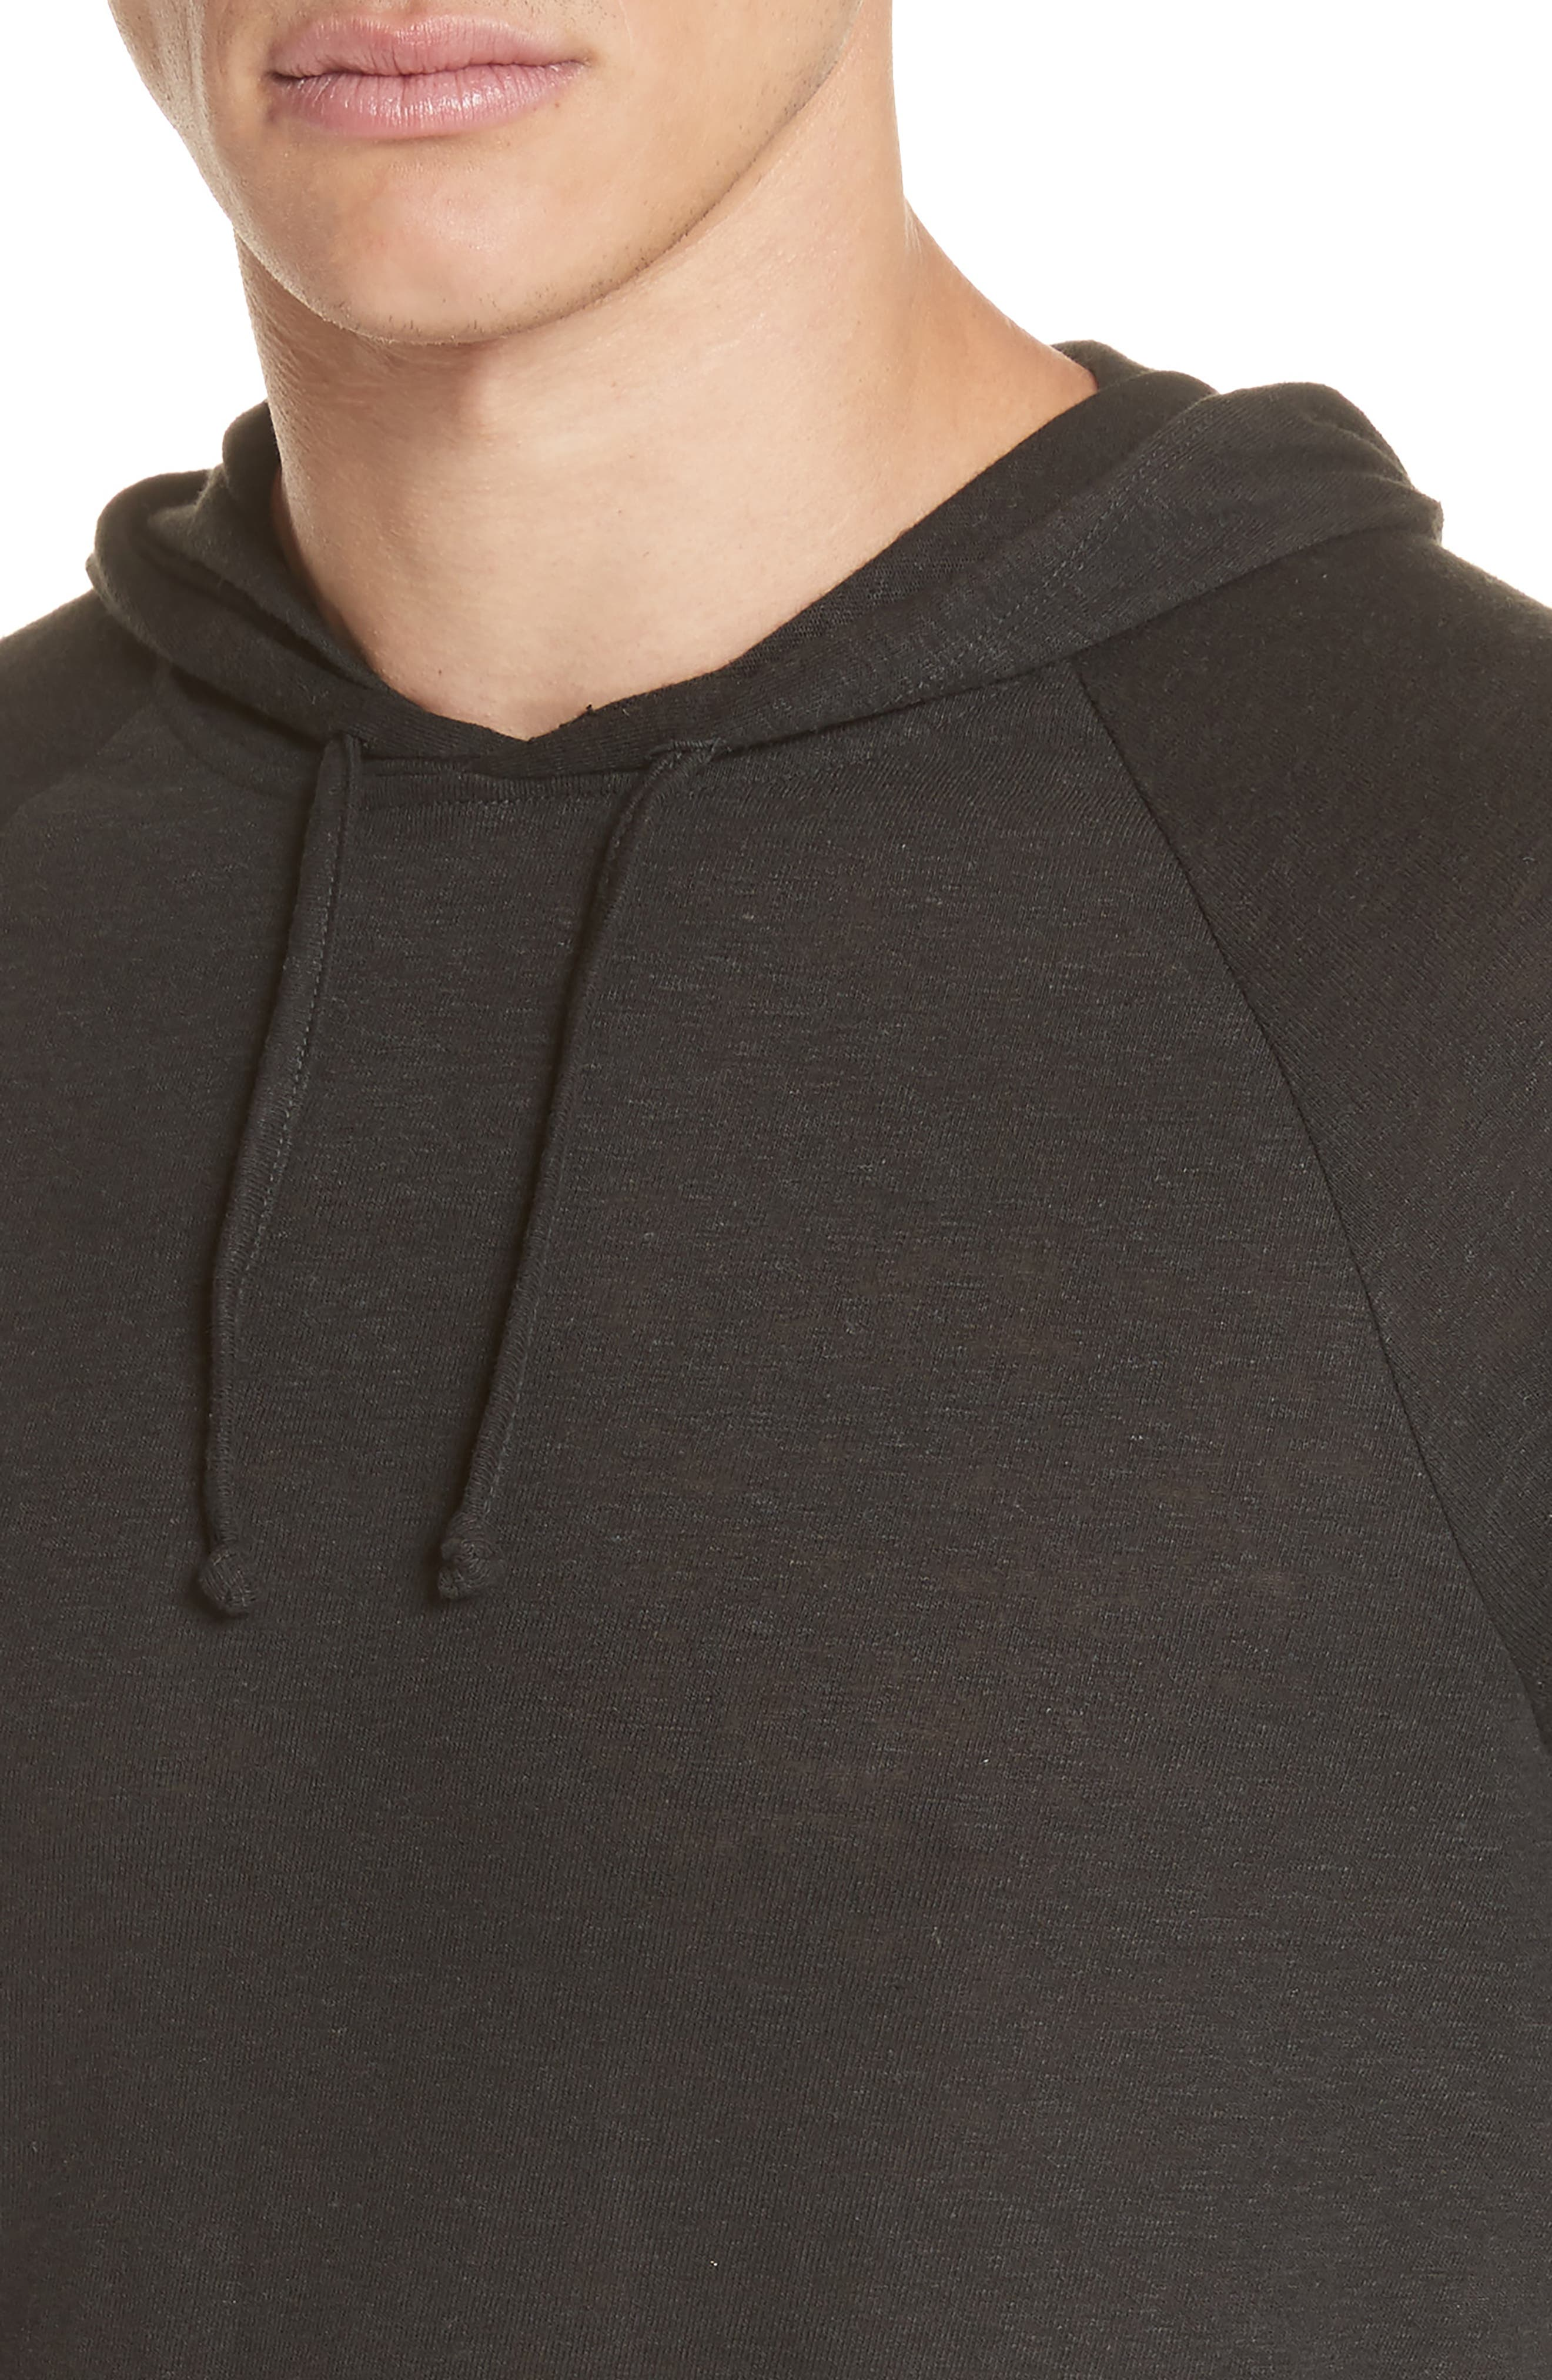 Pullover Hoodie,                             Alternate thumbnail 4, color,                             BLACK